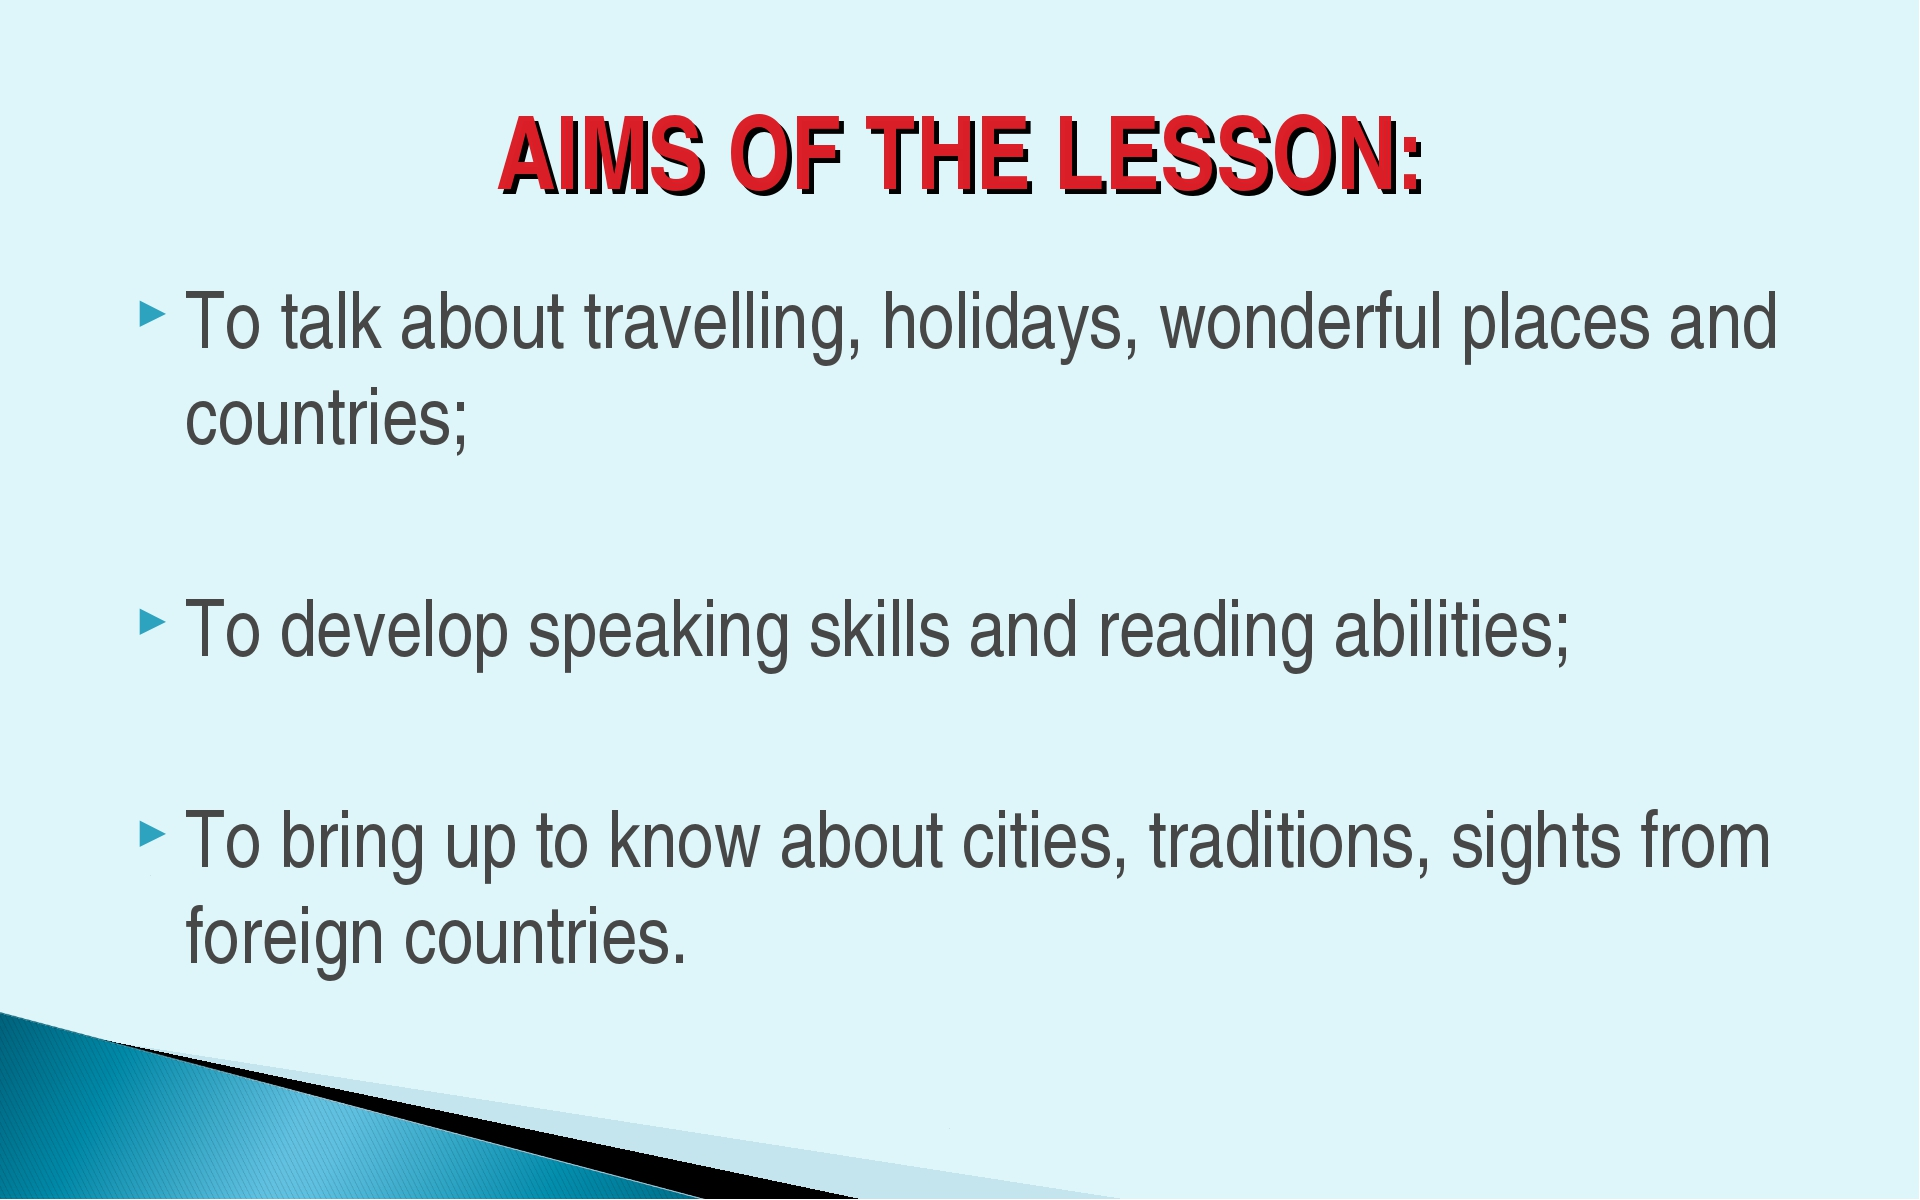 AIMS OF THE LESSON: To talk about travelling, holidays, wonderful places and...